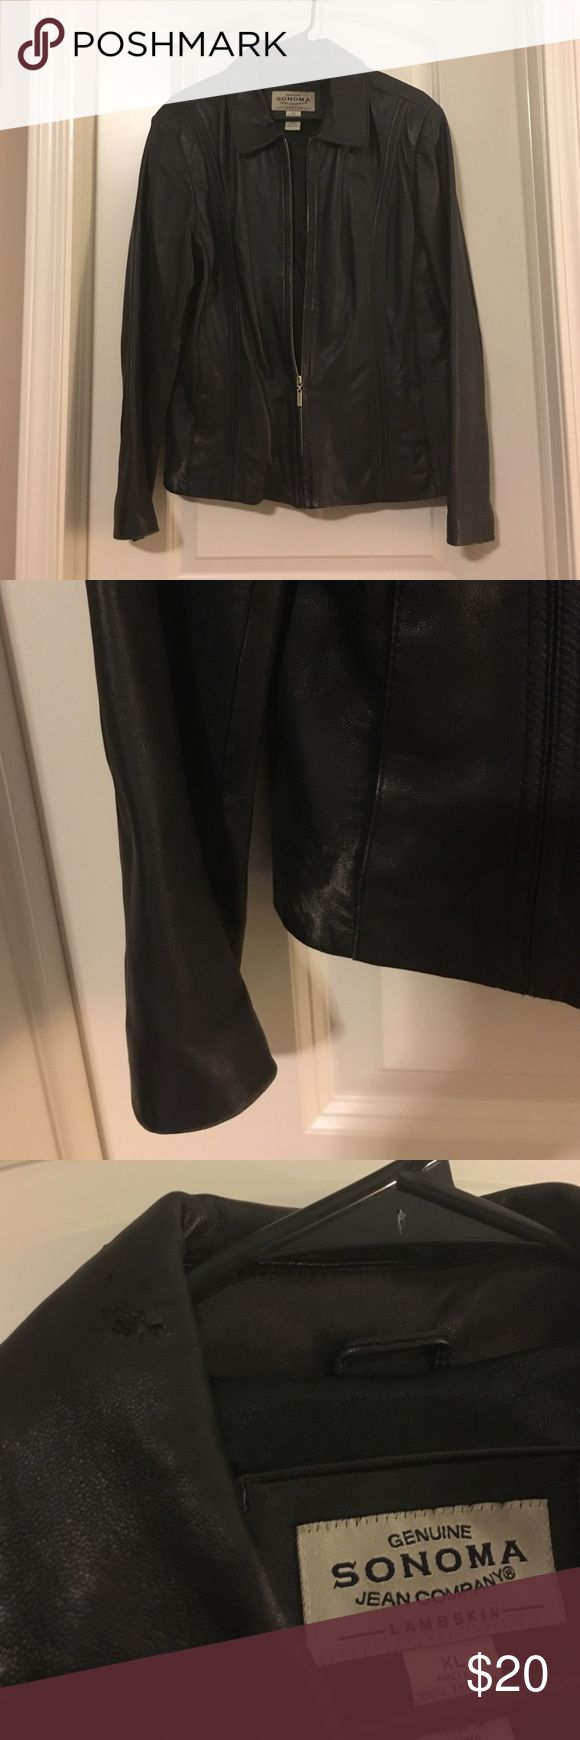 Sonoma Lambskin Leather Jacket Black lambskin jacket in XL. Lining is polyester. There is some wear, note in the pictures. Sonoma Jackets & Coats